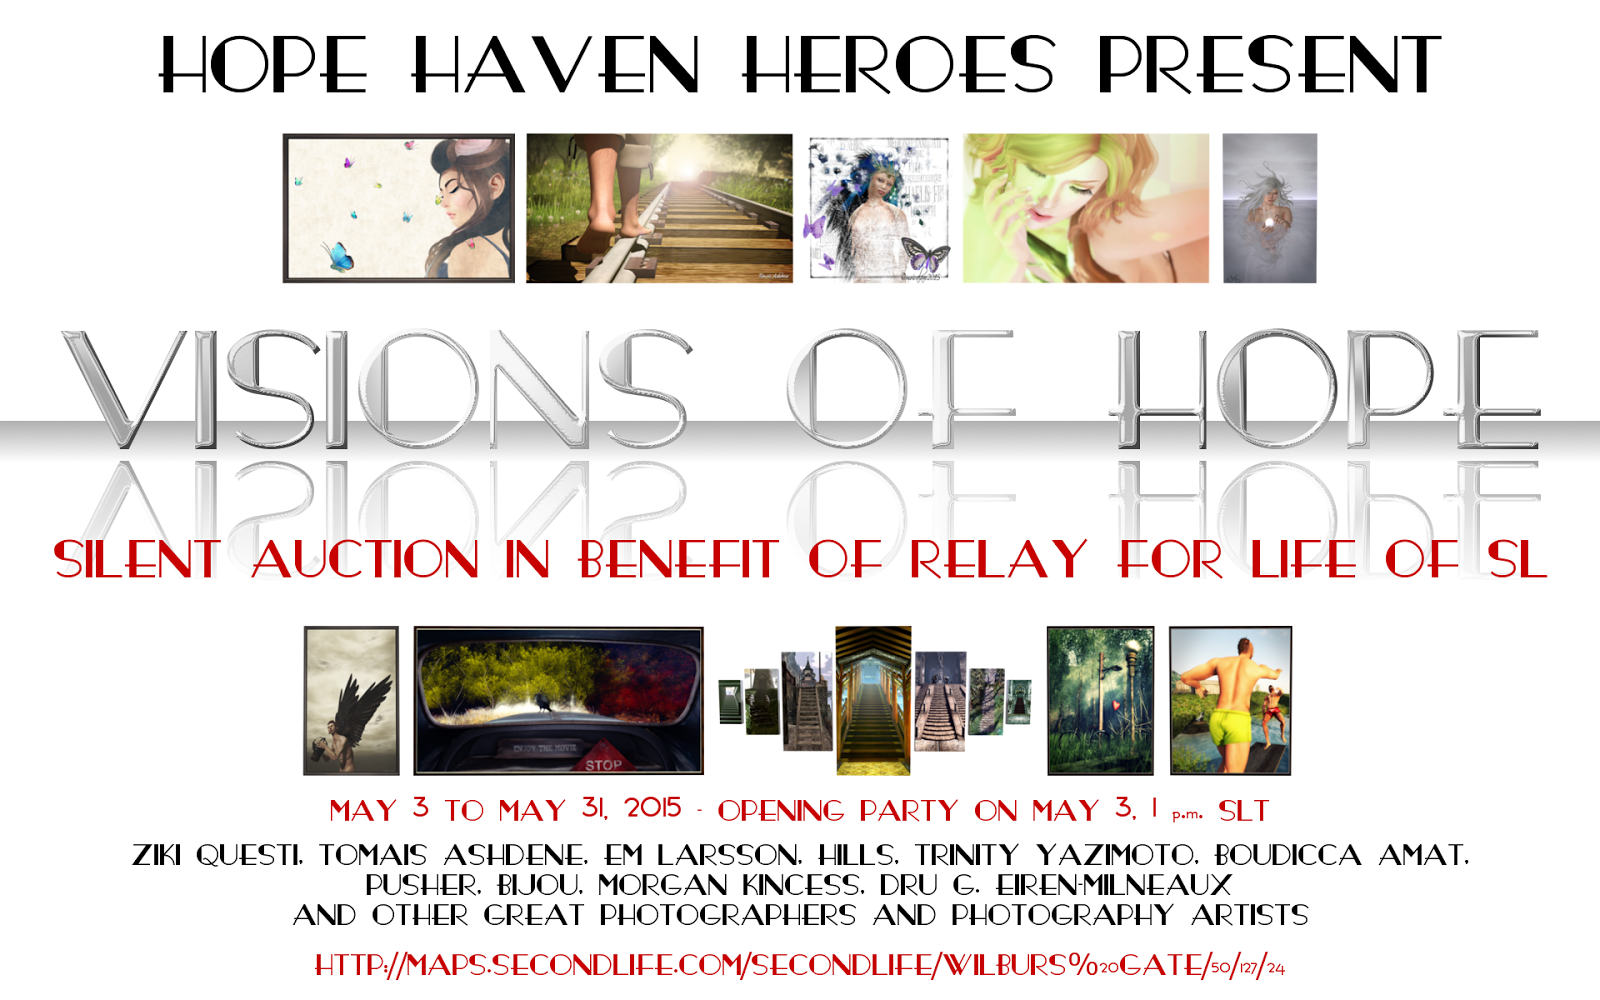 Visions of Hope<br>Silent Auction May 3-31, 2015<br>in benefit for RFL of SL